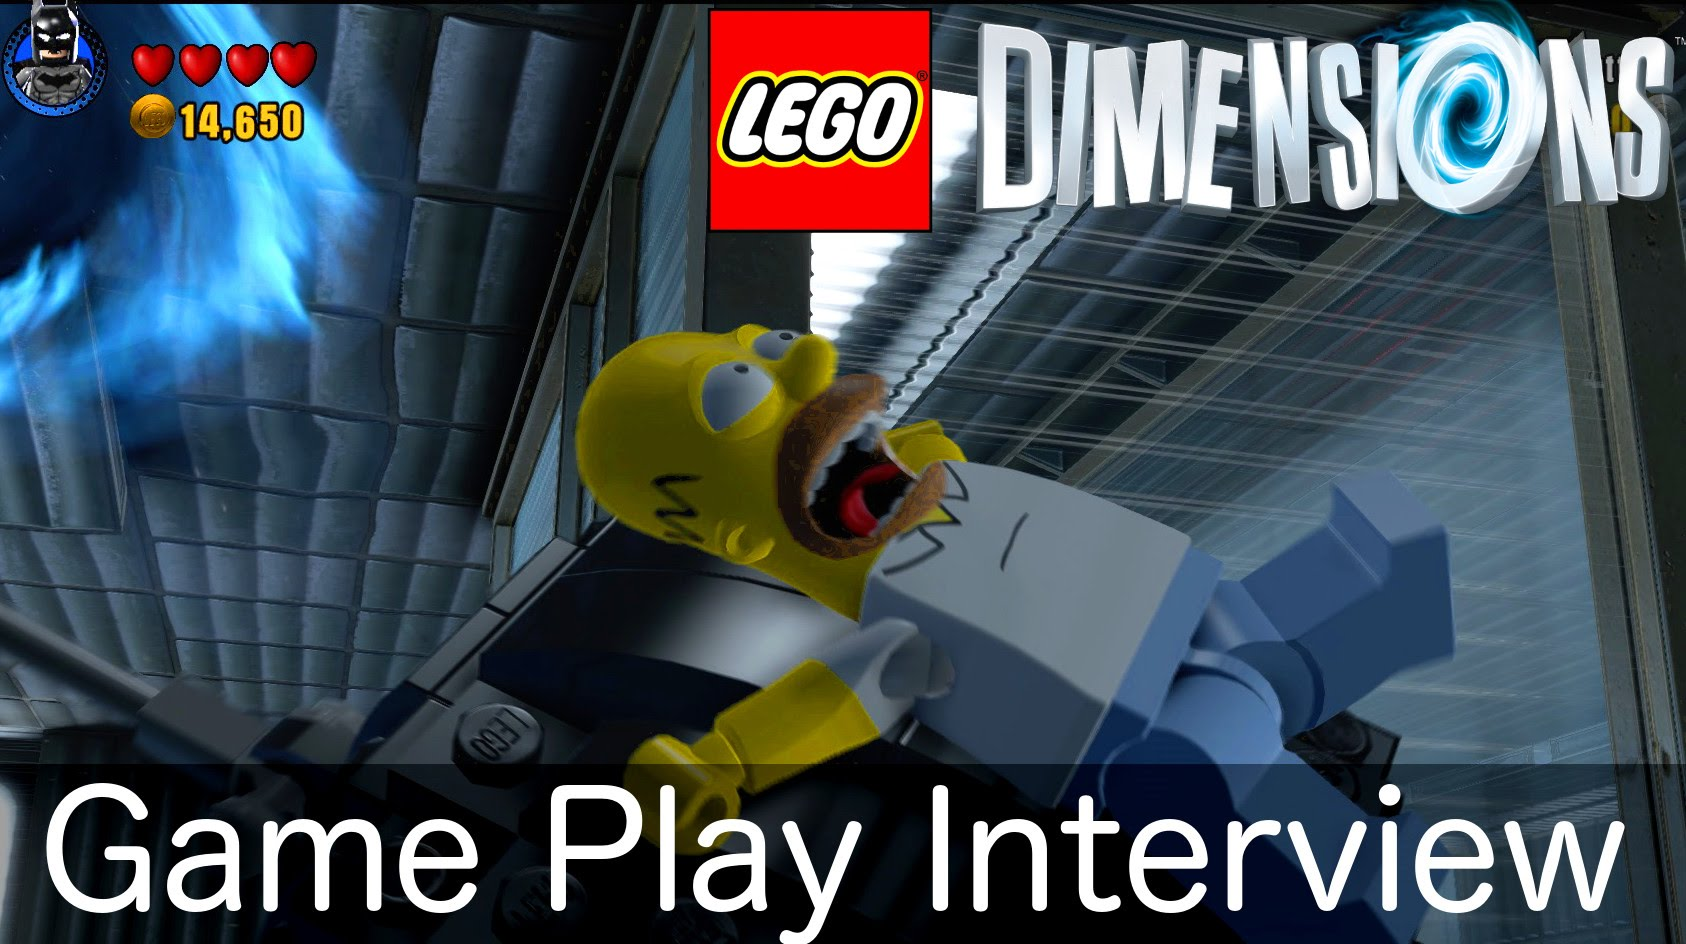 Lego Dimensions Game-Play Interview